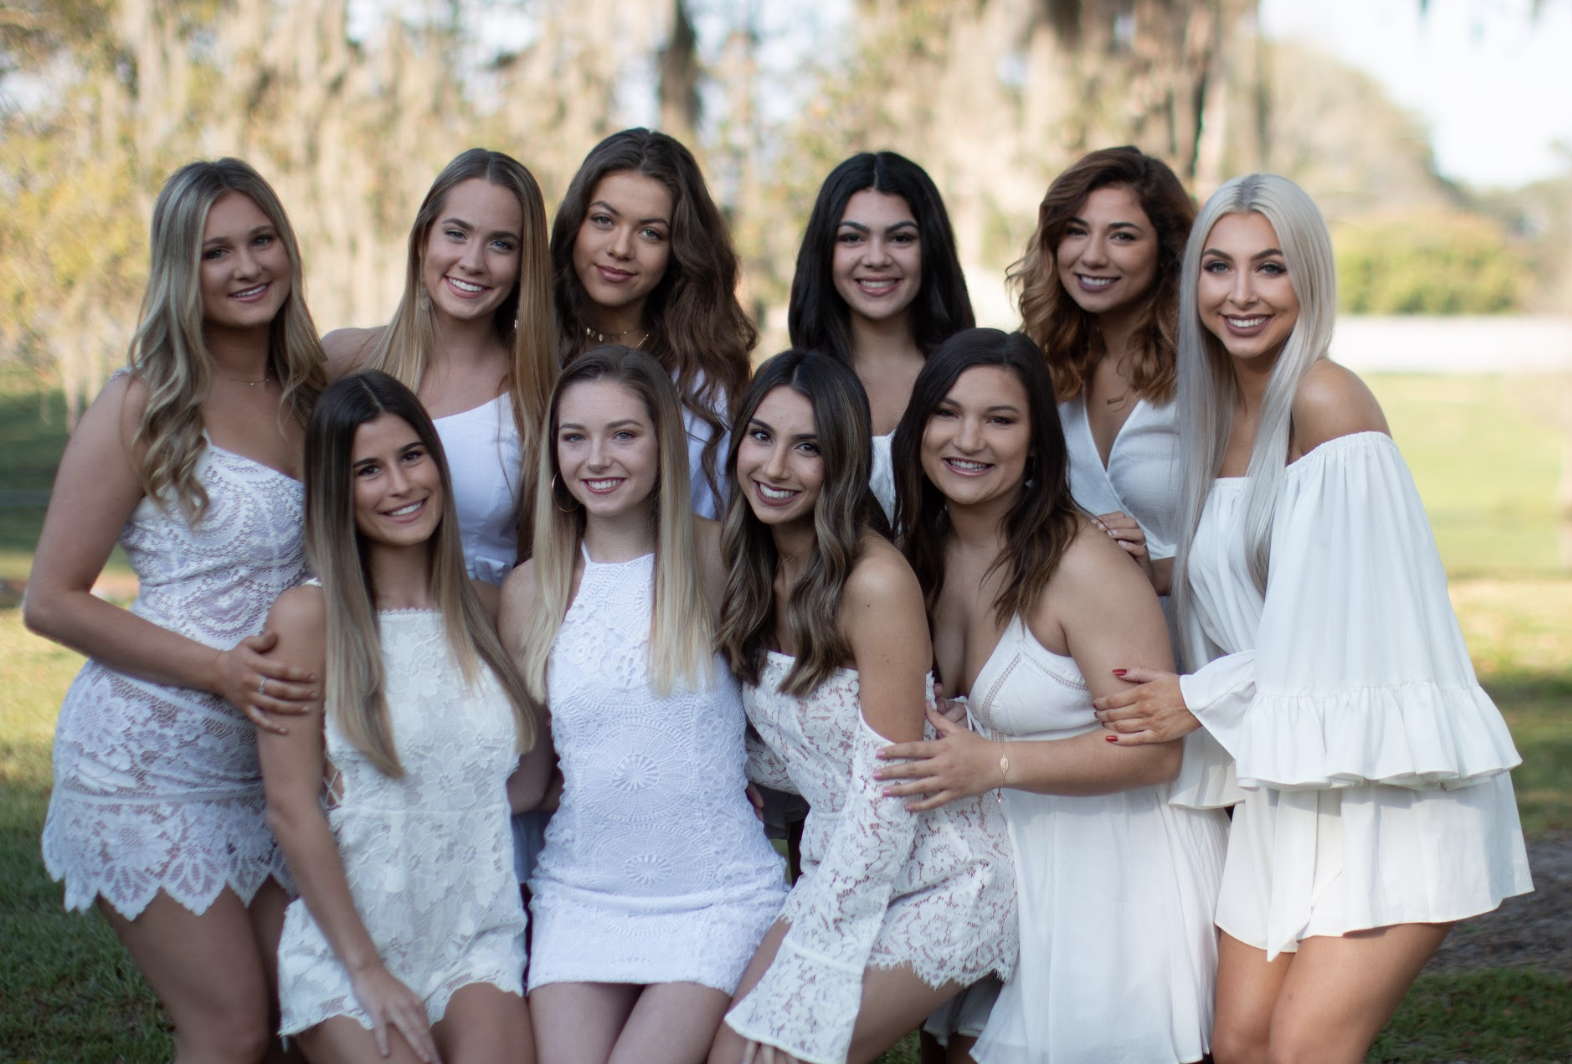 dilema Sistemáticamente capa  Home | Kappa Delta at University of Central Florida